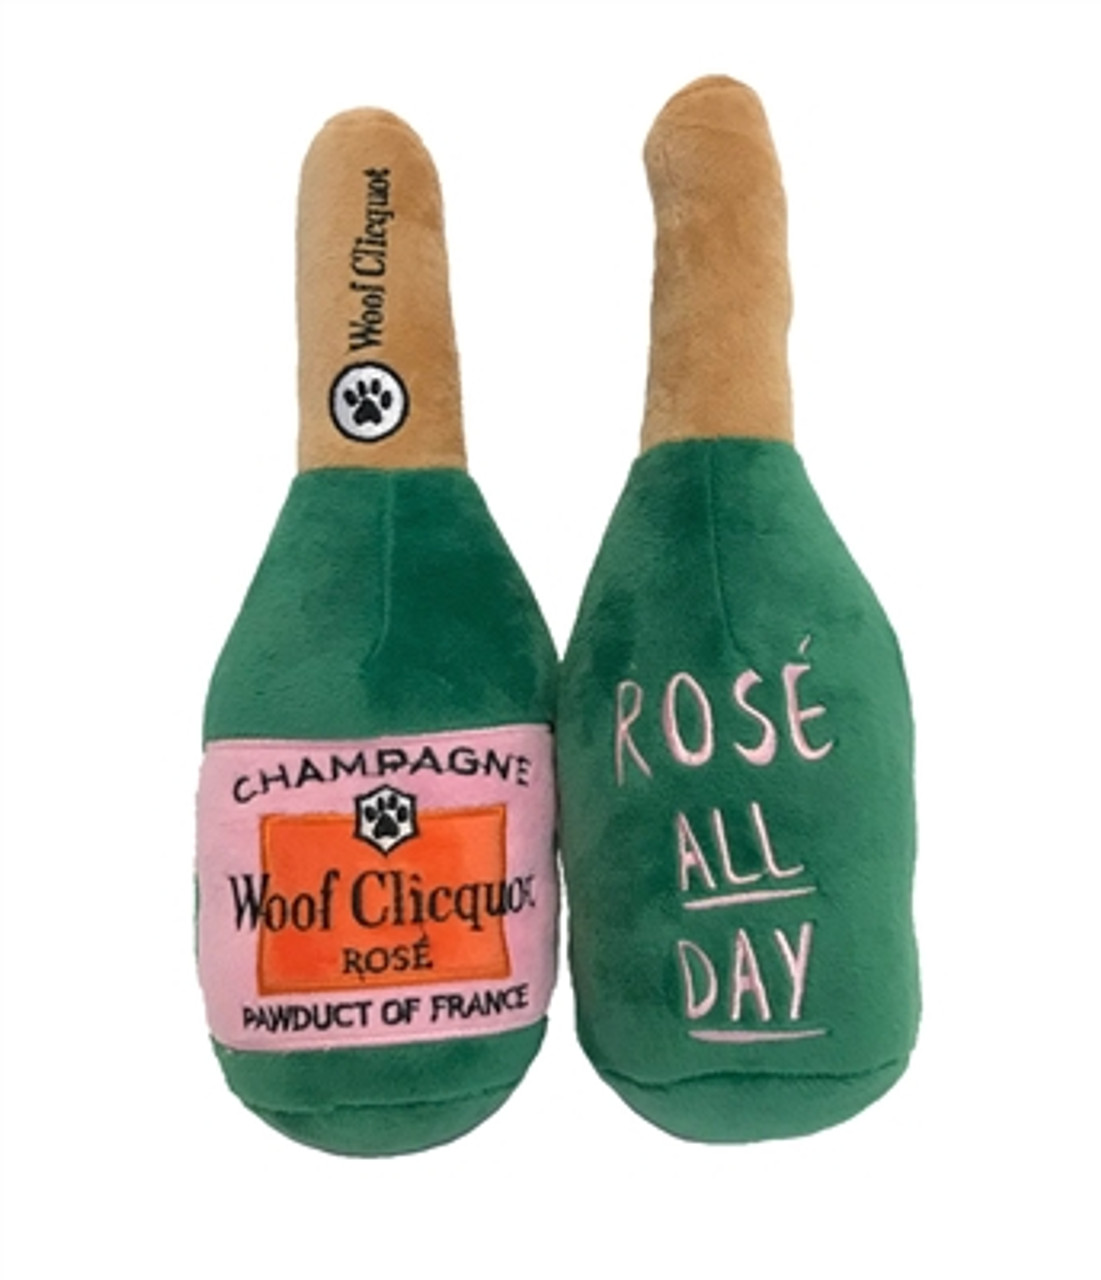 Woof Clicquot Rose' Champagne Bottle Plush Toy